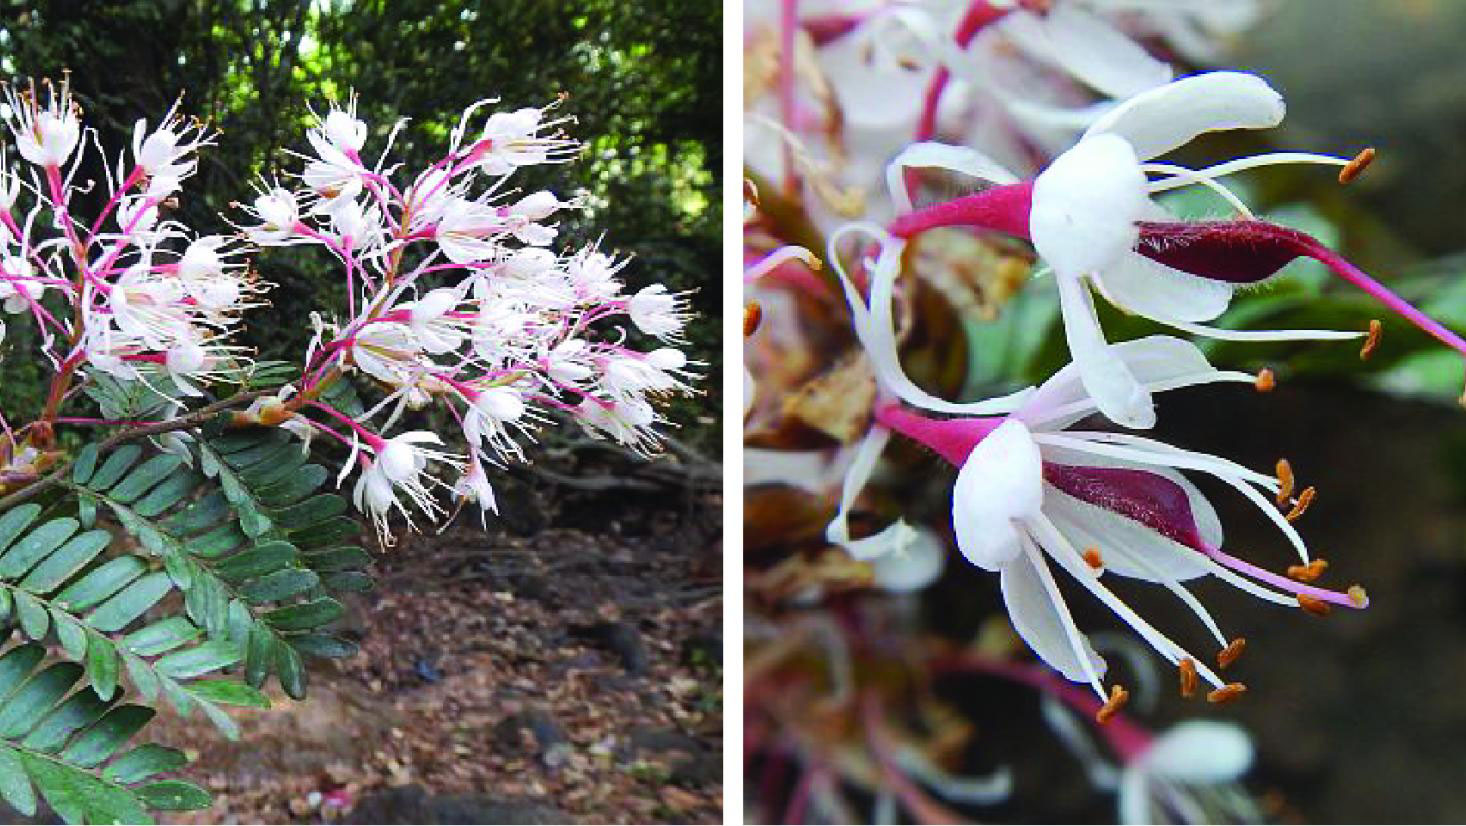 White and pink flowers of the new Talbotiella species